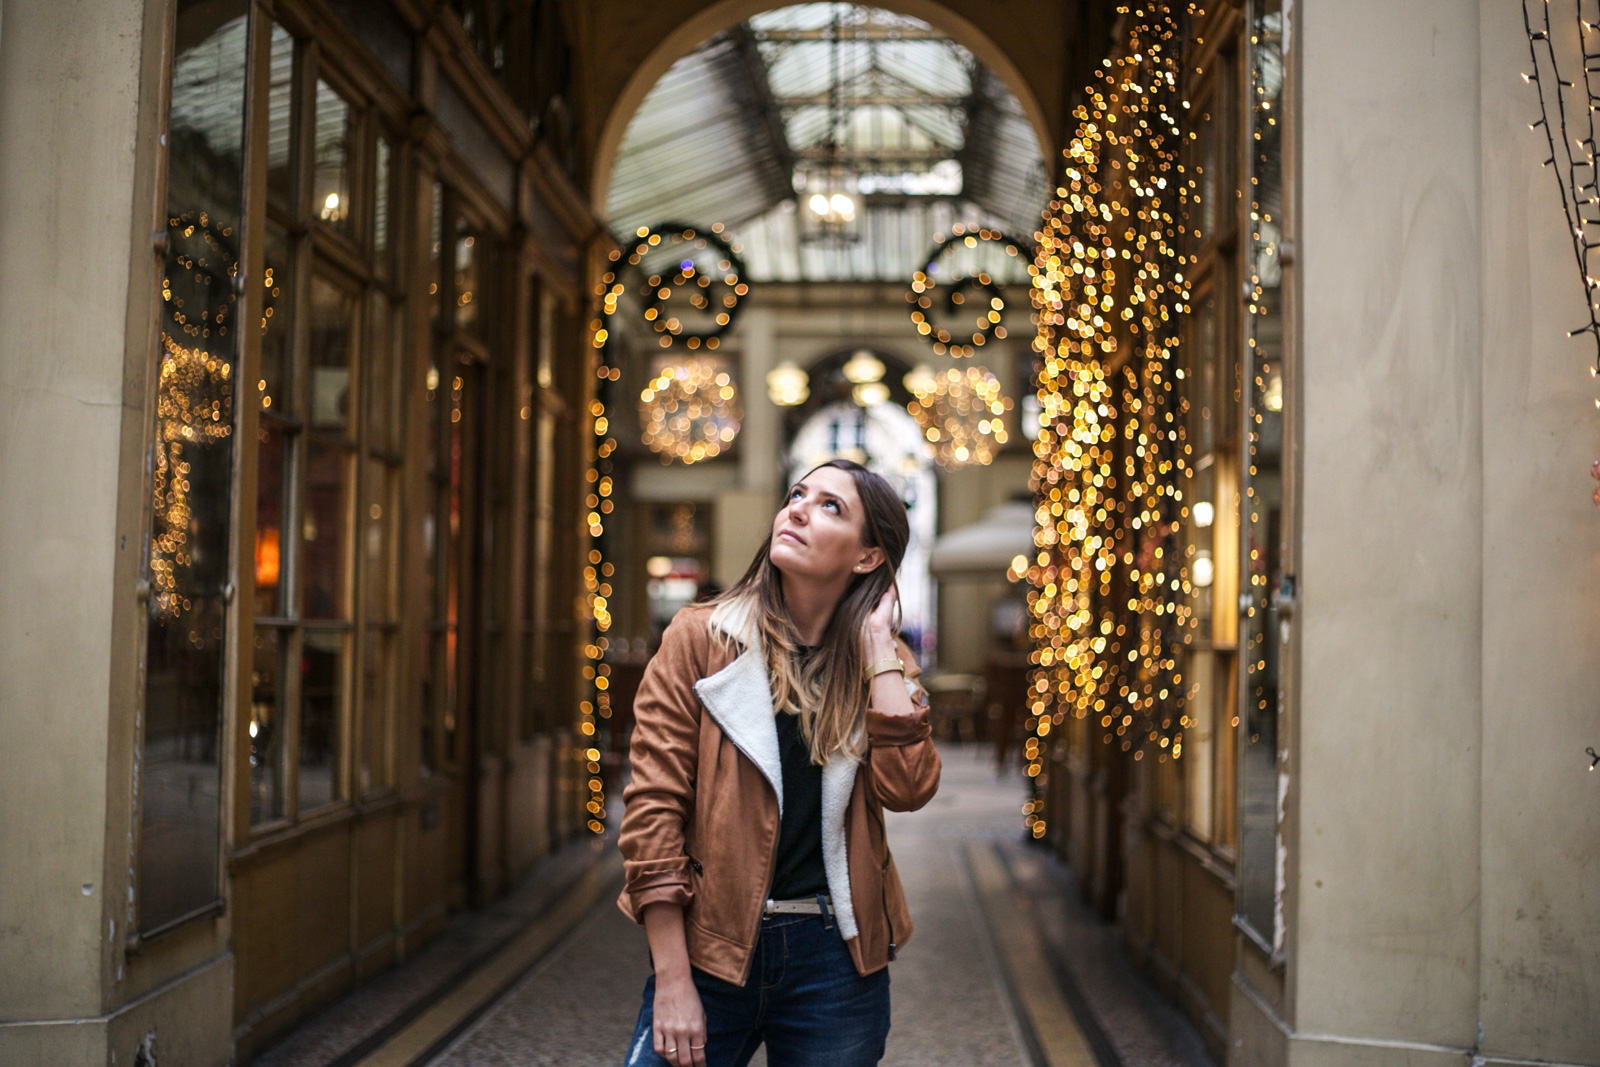 shooting galerie vivienne paris blog tendance paris